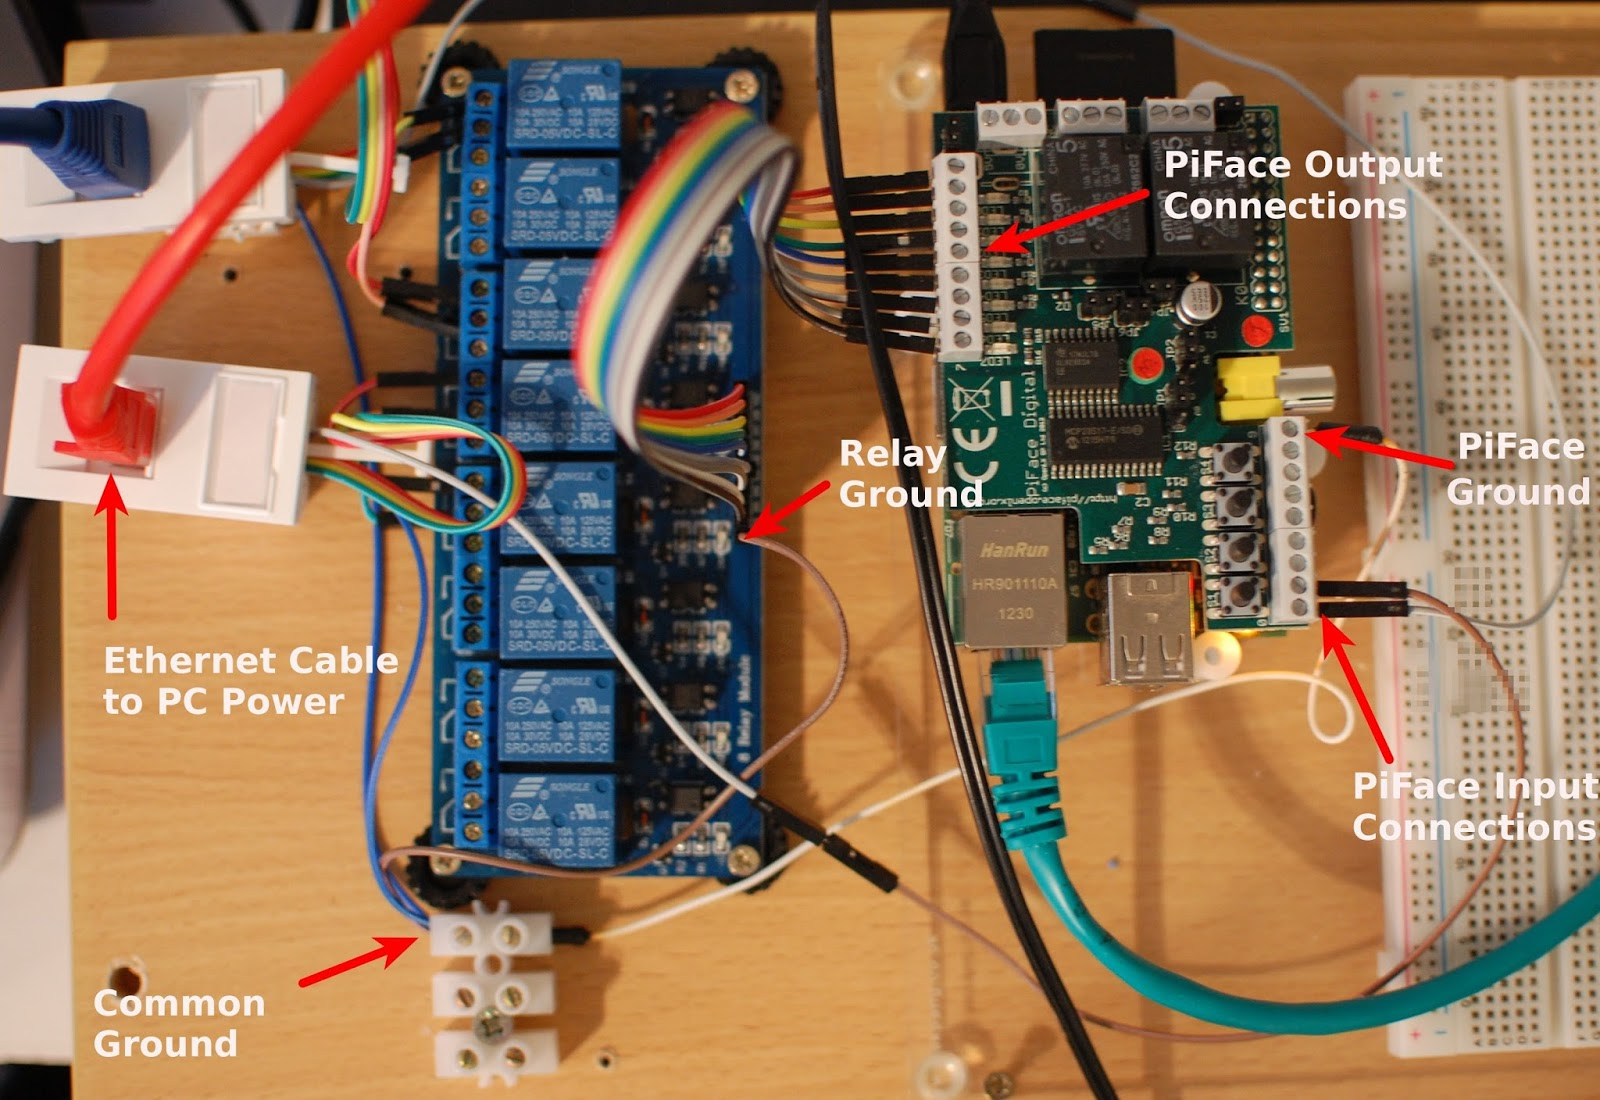 gnuoy: PC Power Control with a Raspberry Pi and Maas